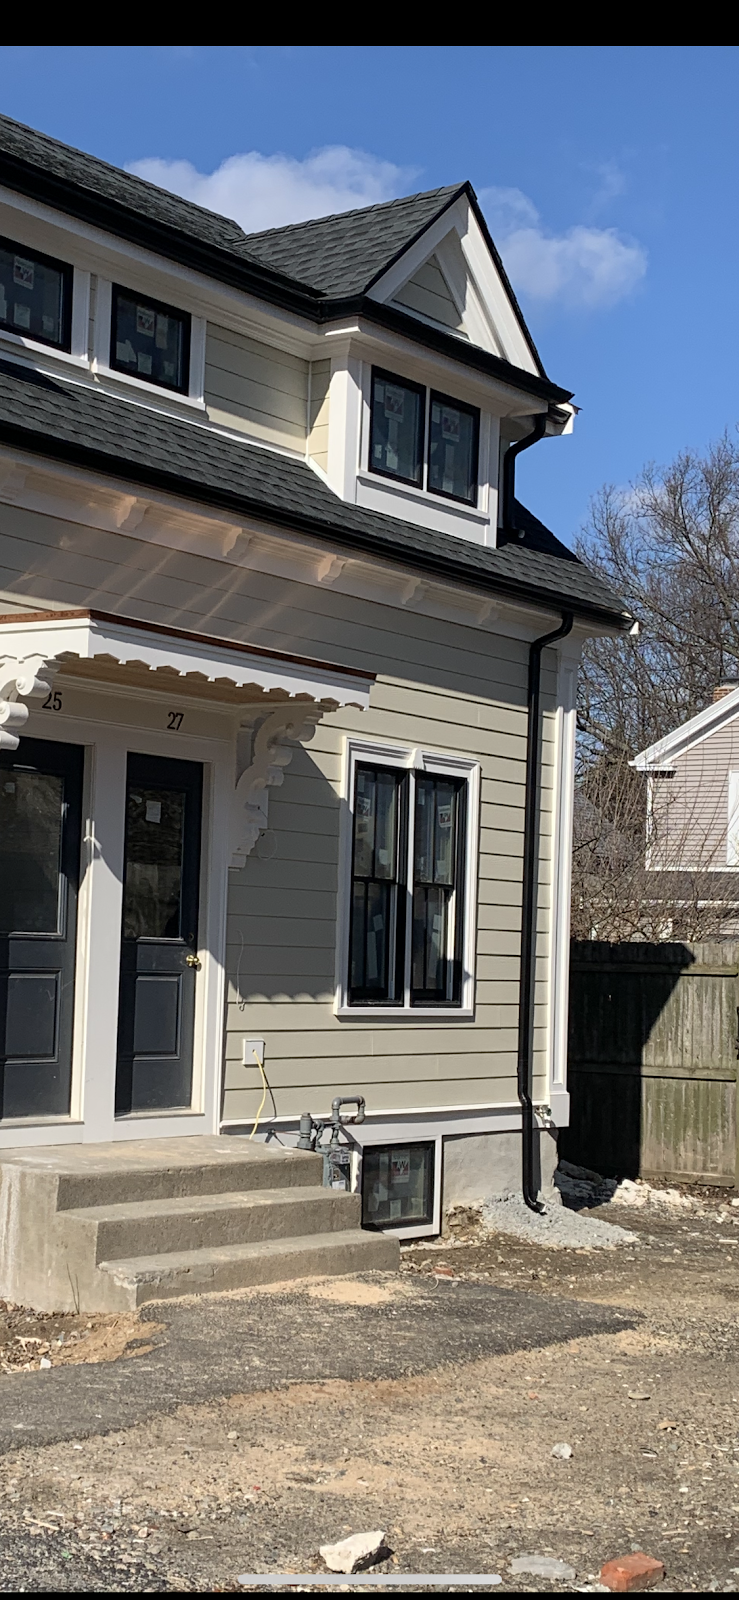 Recon Roofing & Gutters, LLC. - roofing contractor  | Photo 10 of 10 | Address: 41 Zoar Ave, Dedham, MA 02026, USA | Phone: (617) 924-1133